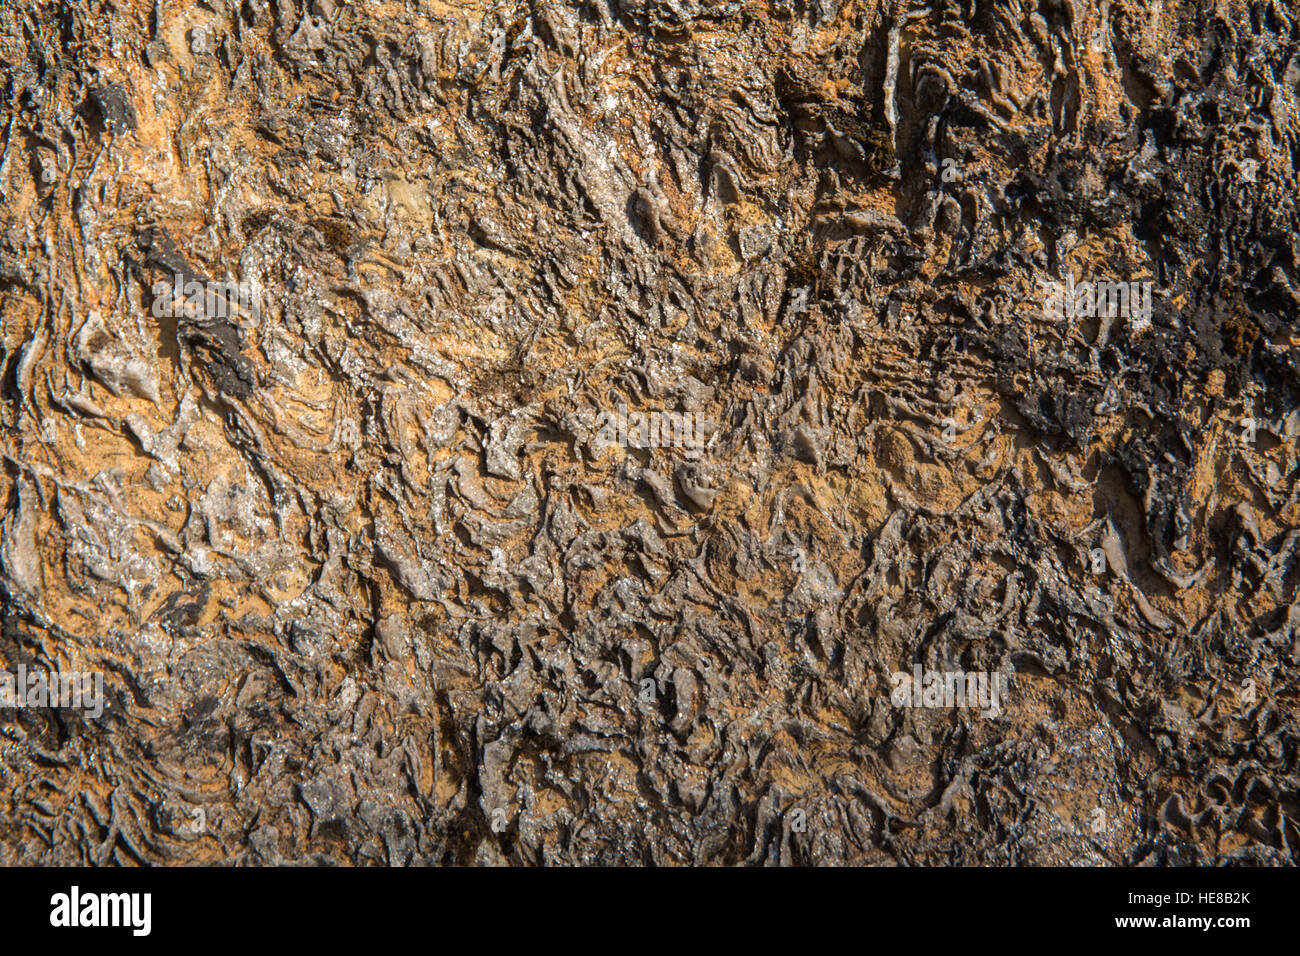 Unusual rock background texture rough with swirls and natural pattern and design - Stock Image